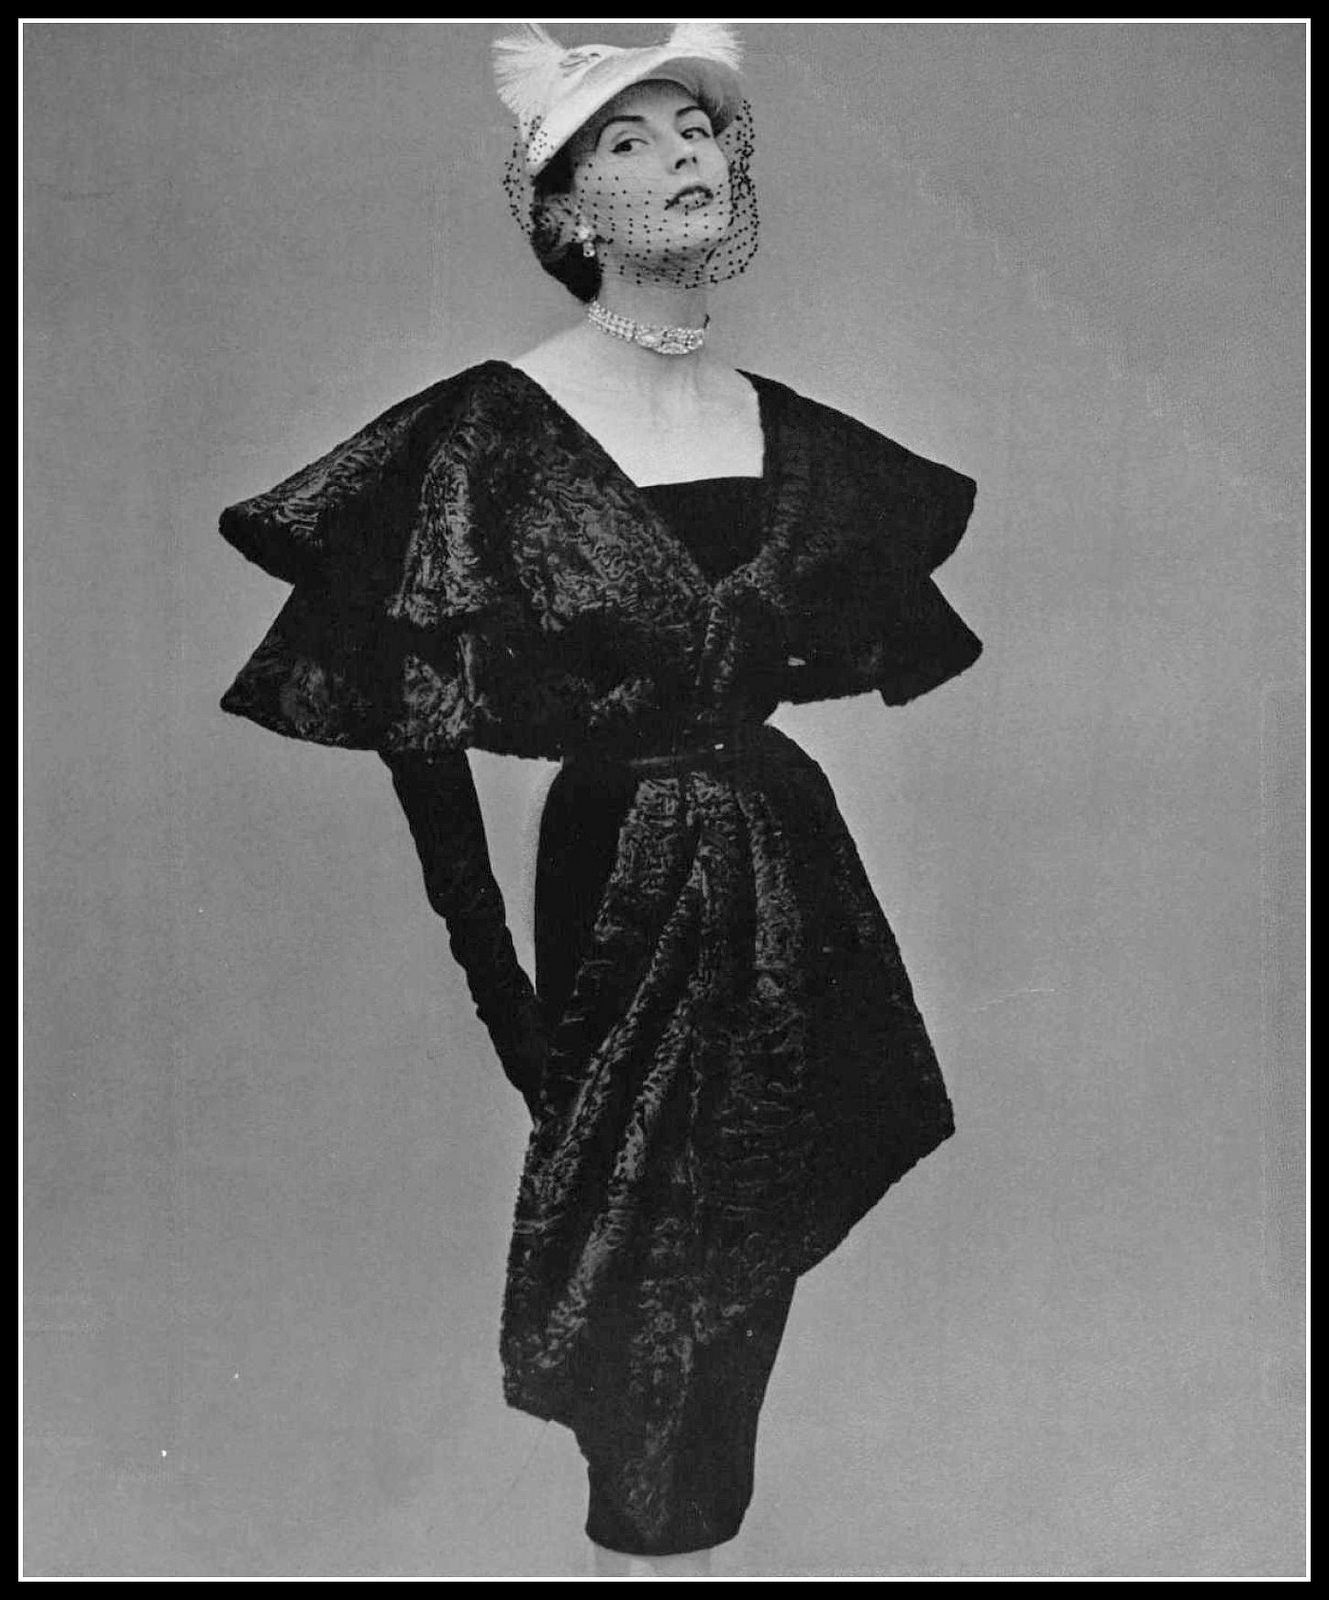 Model in elongated astrakhan cape-stole over black velvet sheath by Jacques Fath, jewelry by Roger Scémama, photo by Pottier, 1951